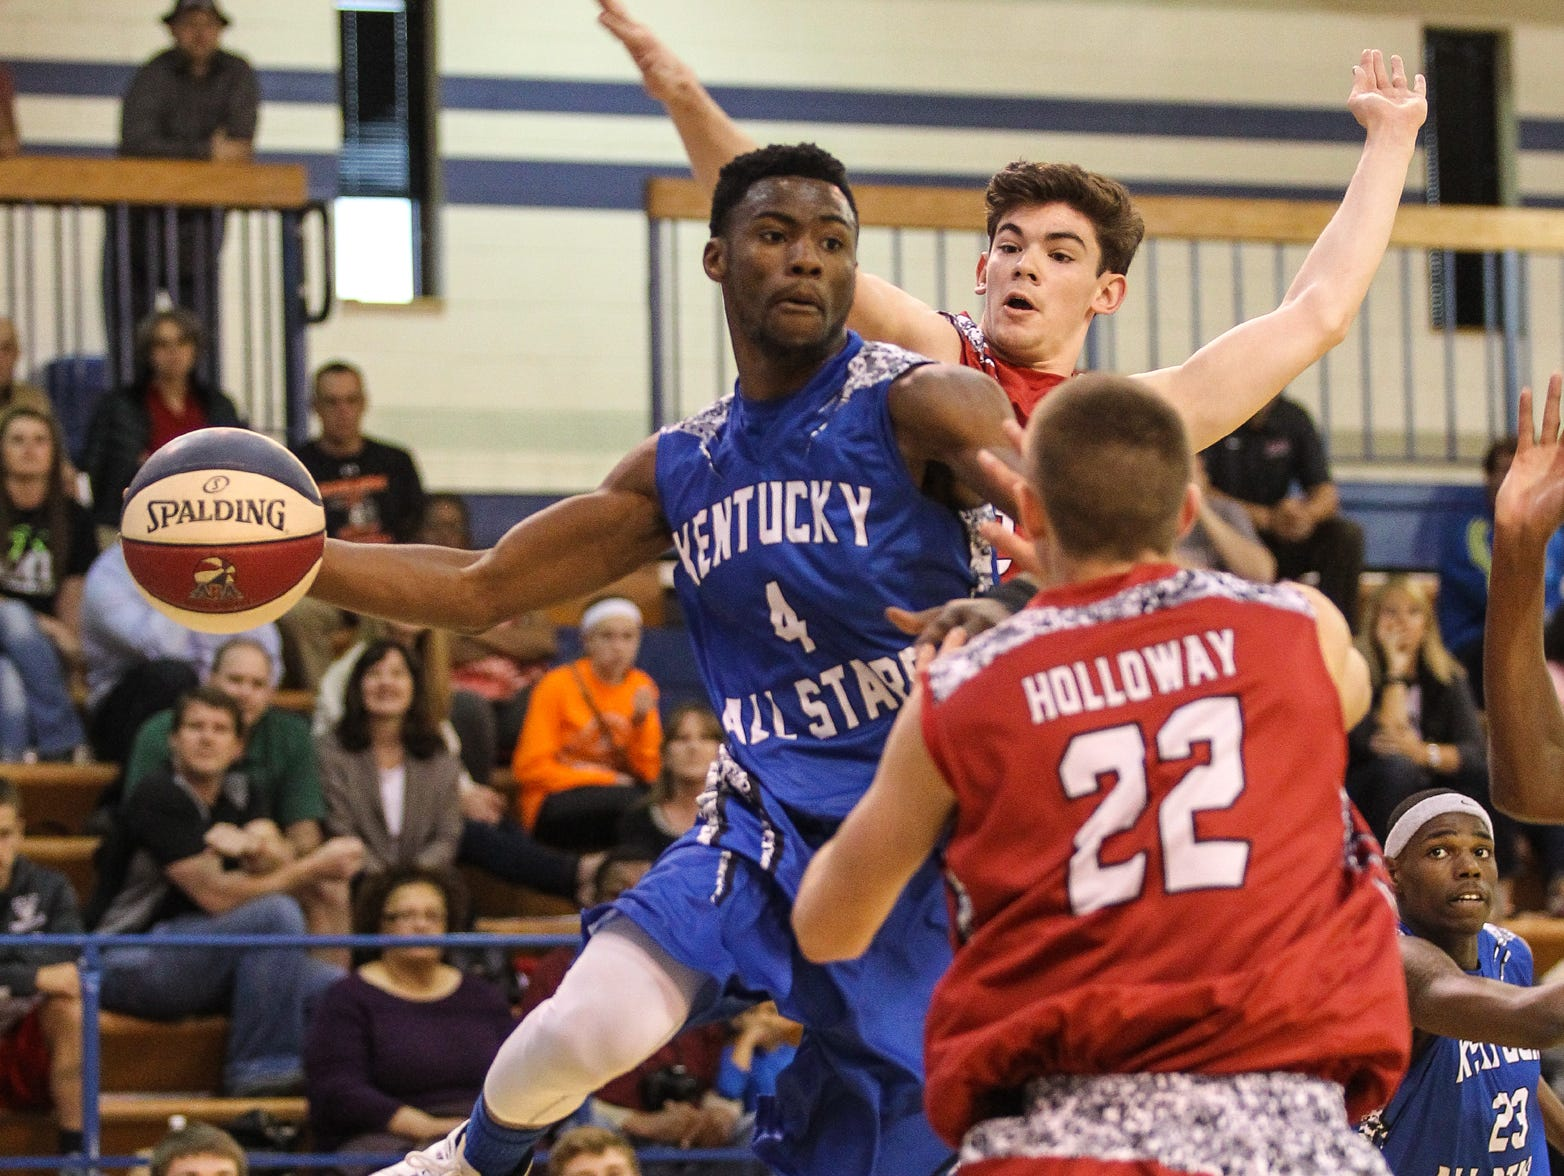 Kentucky's Terrell Grey looks to pass the ball near the basket during the Ohio-Kentucky All-Star game, Saturday, April 11, 2015.